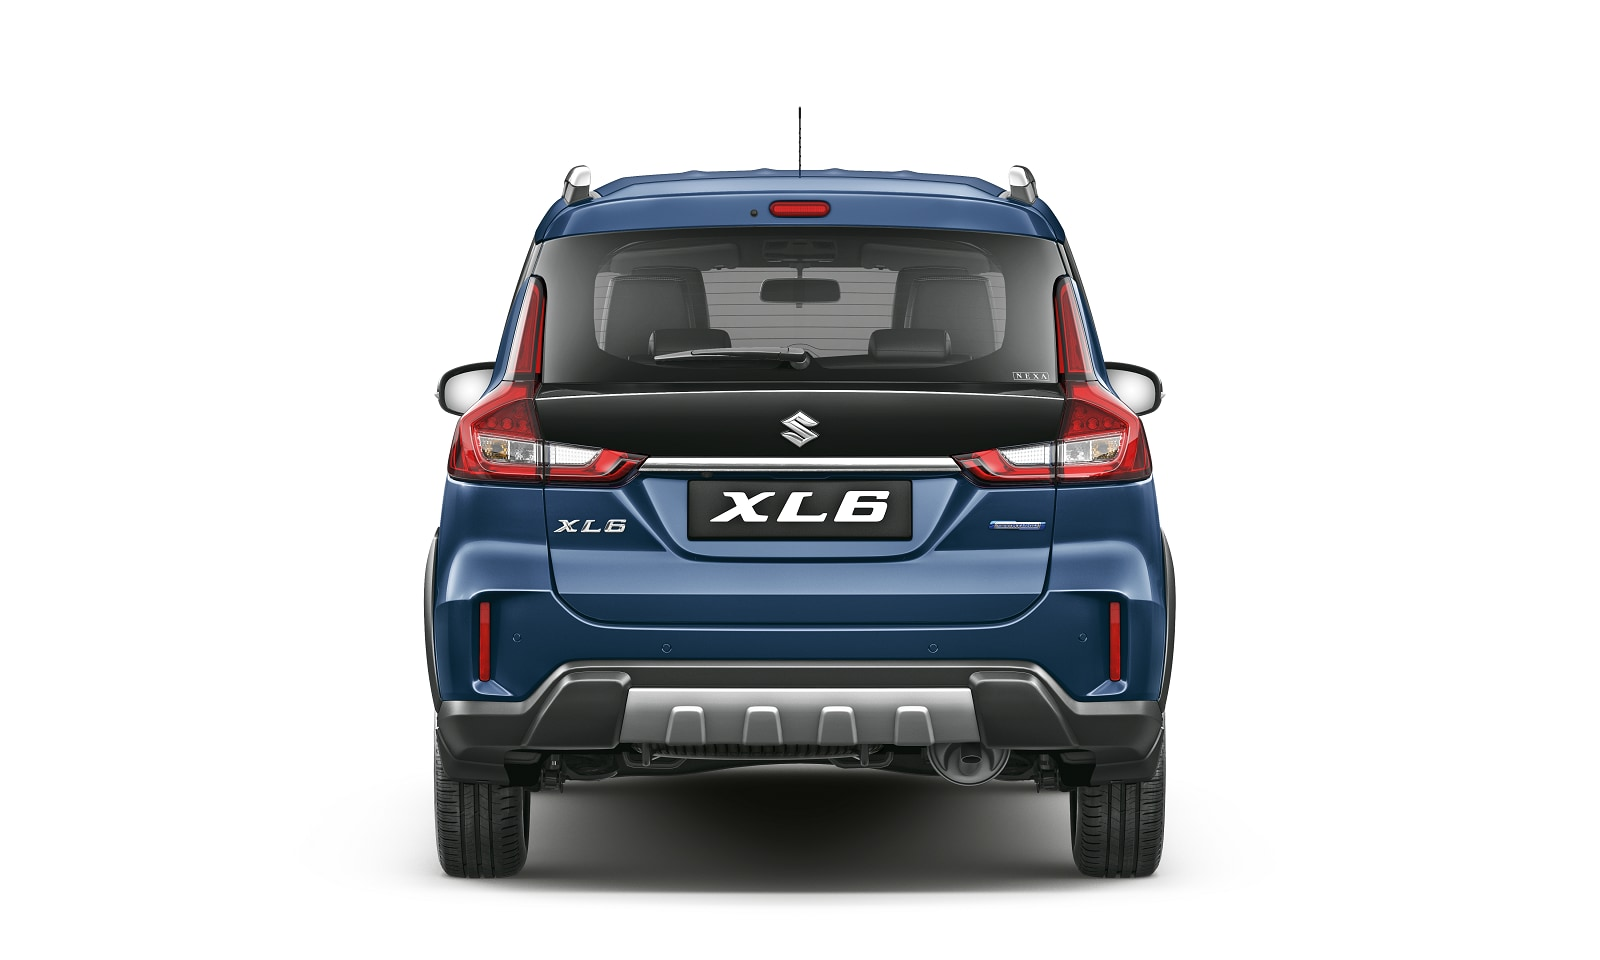 The XL6 is powered by BS6 compliant K15 petrol engine with Progressive Smart Hybrid technology with Li-ion battery. The XL6 will be available in a 5-speed manual and 4-speed automatic transmission options.